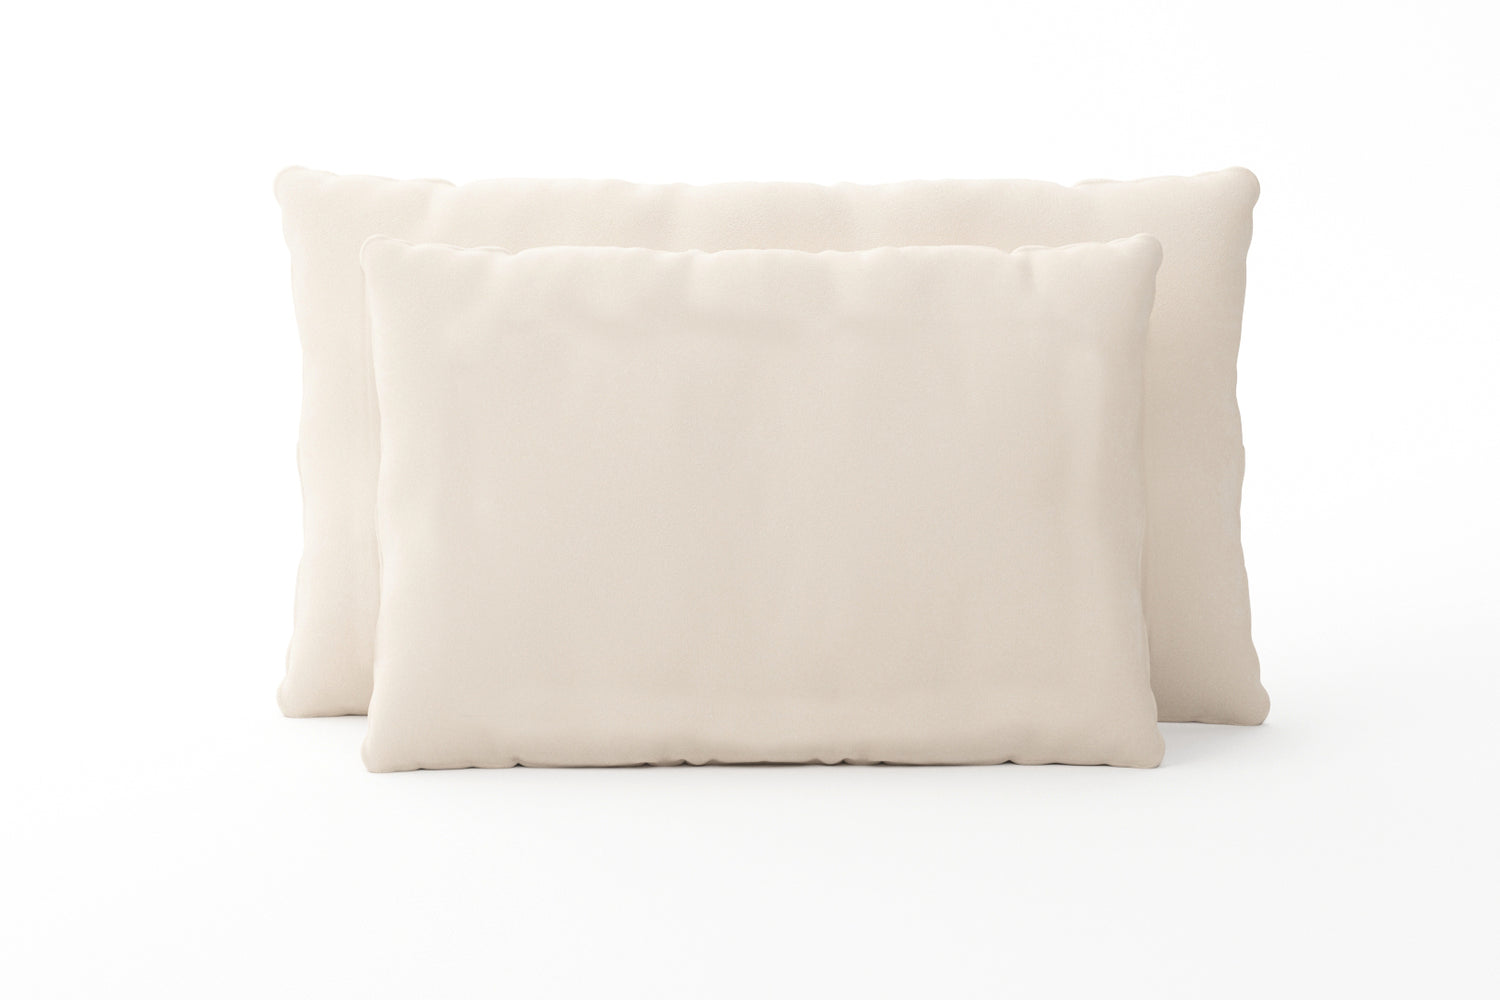 Wool-Wrapped Organic Shredded Rubber Pillow